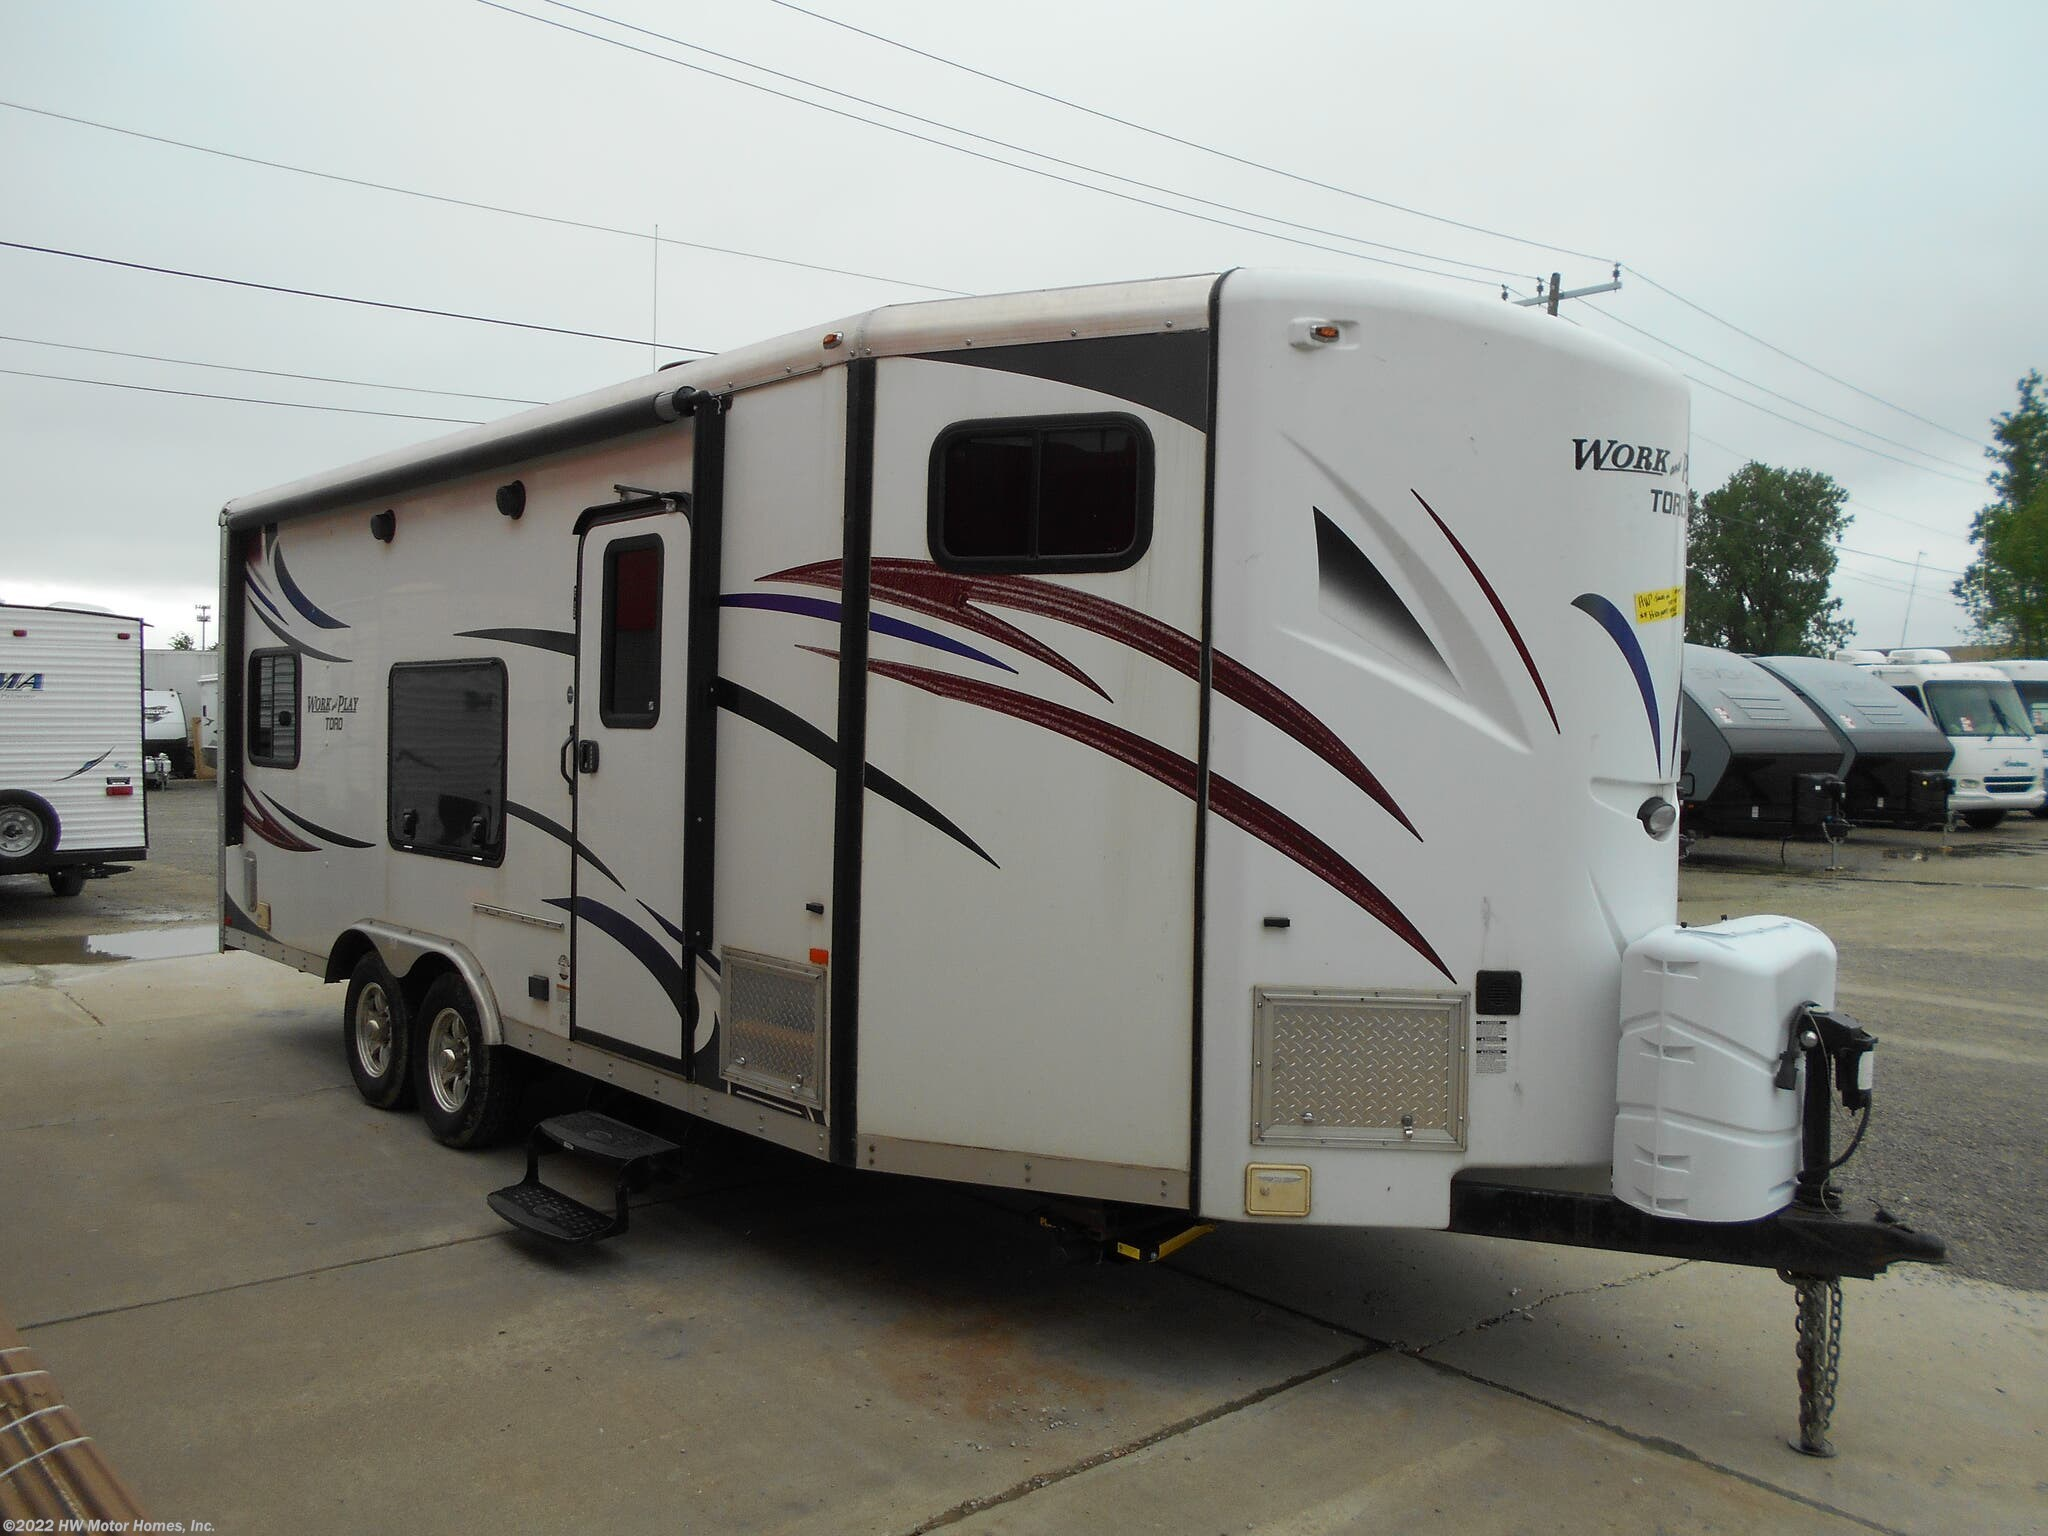 Work And Play 21Vfb >> 2014 Forest River Rv Work And Play 21vfb For Sale In Canton Mi 48188 U14727